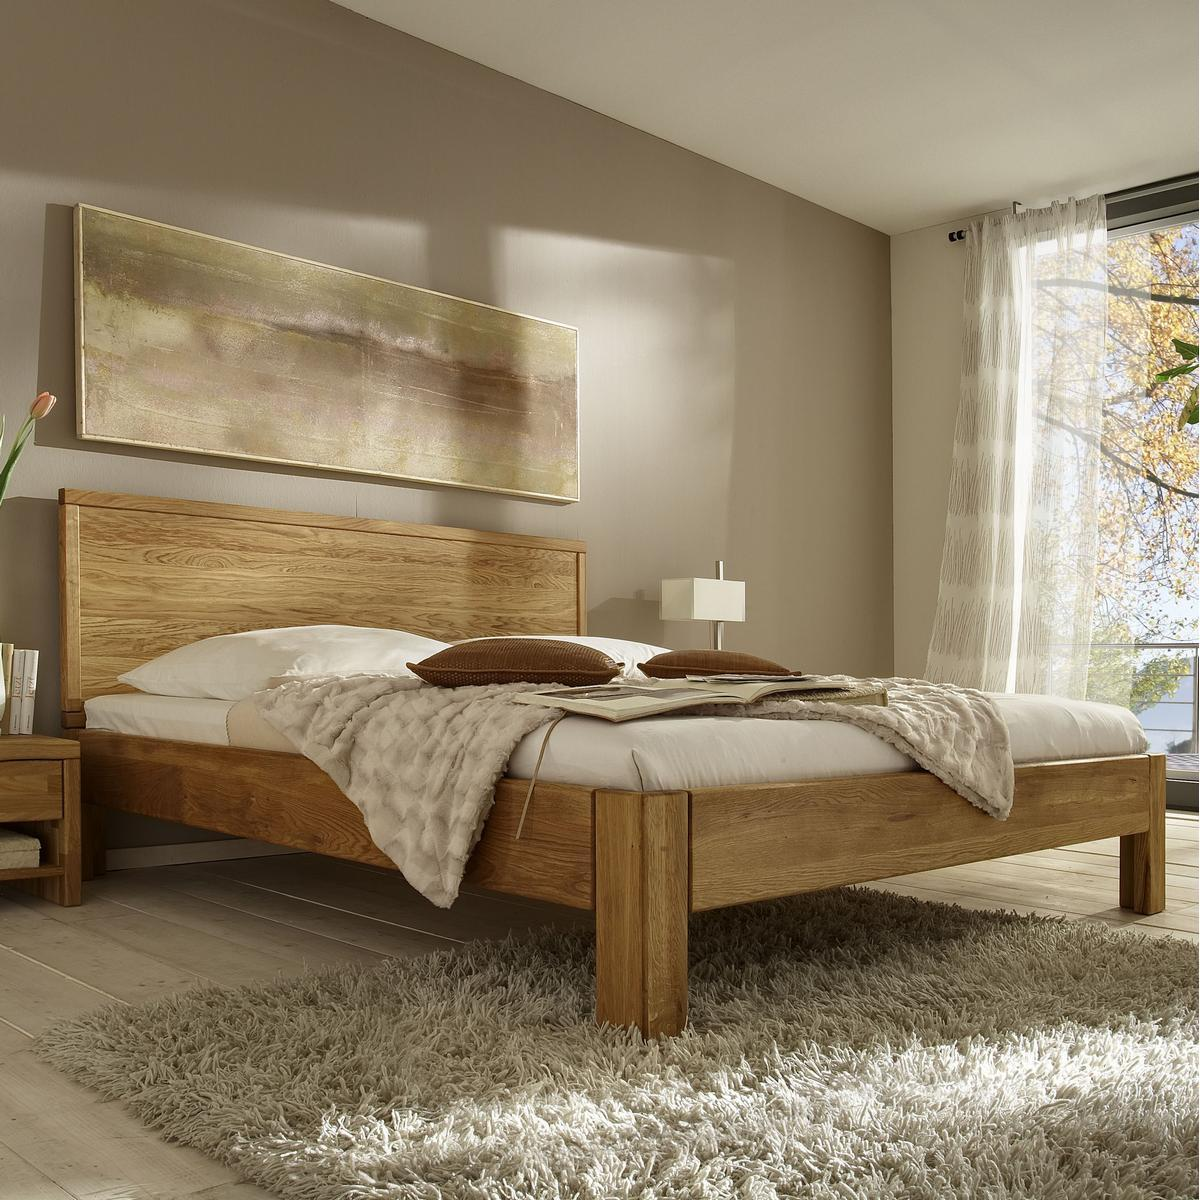 bett 200x200 massivholz beste bildideen zu hause design. Black Bedroom Furniture Sets. Home Design Ideas